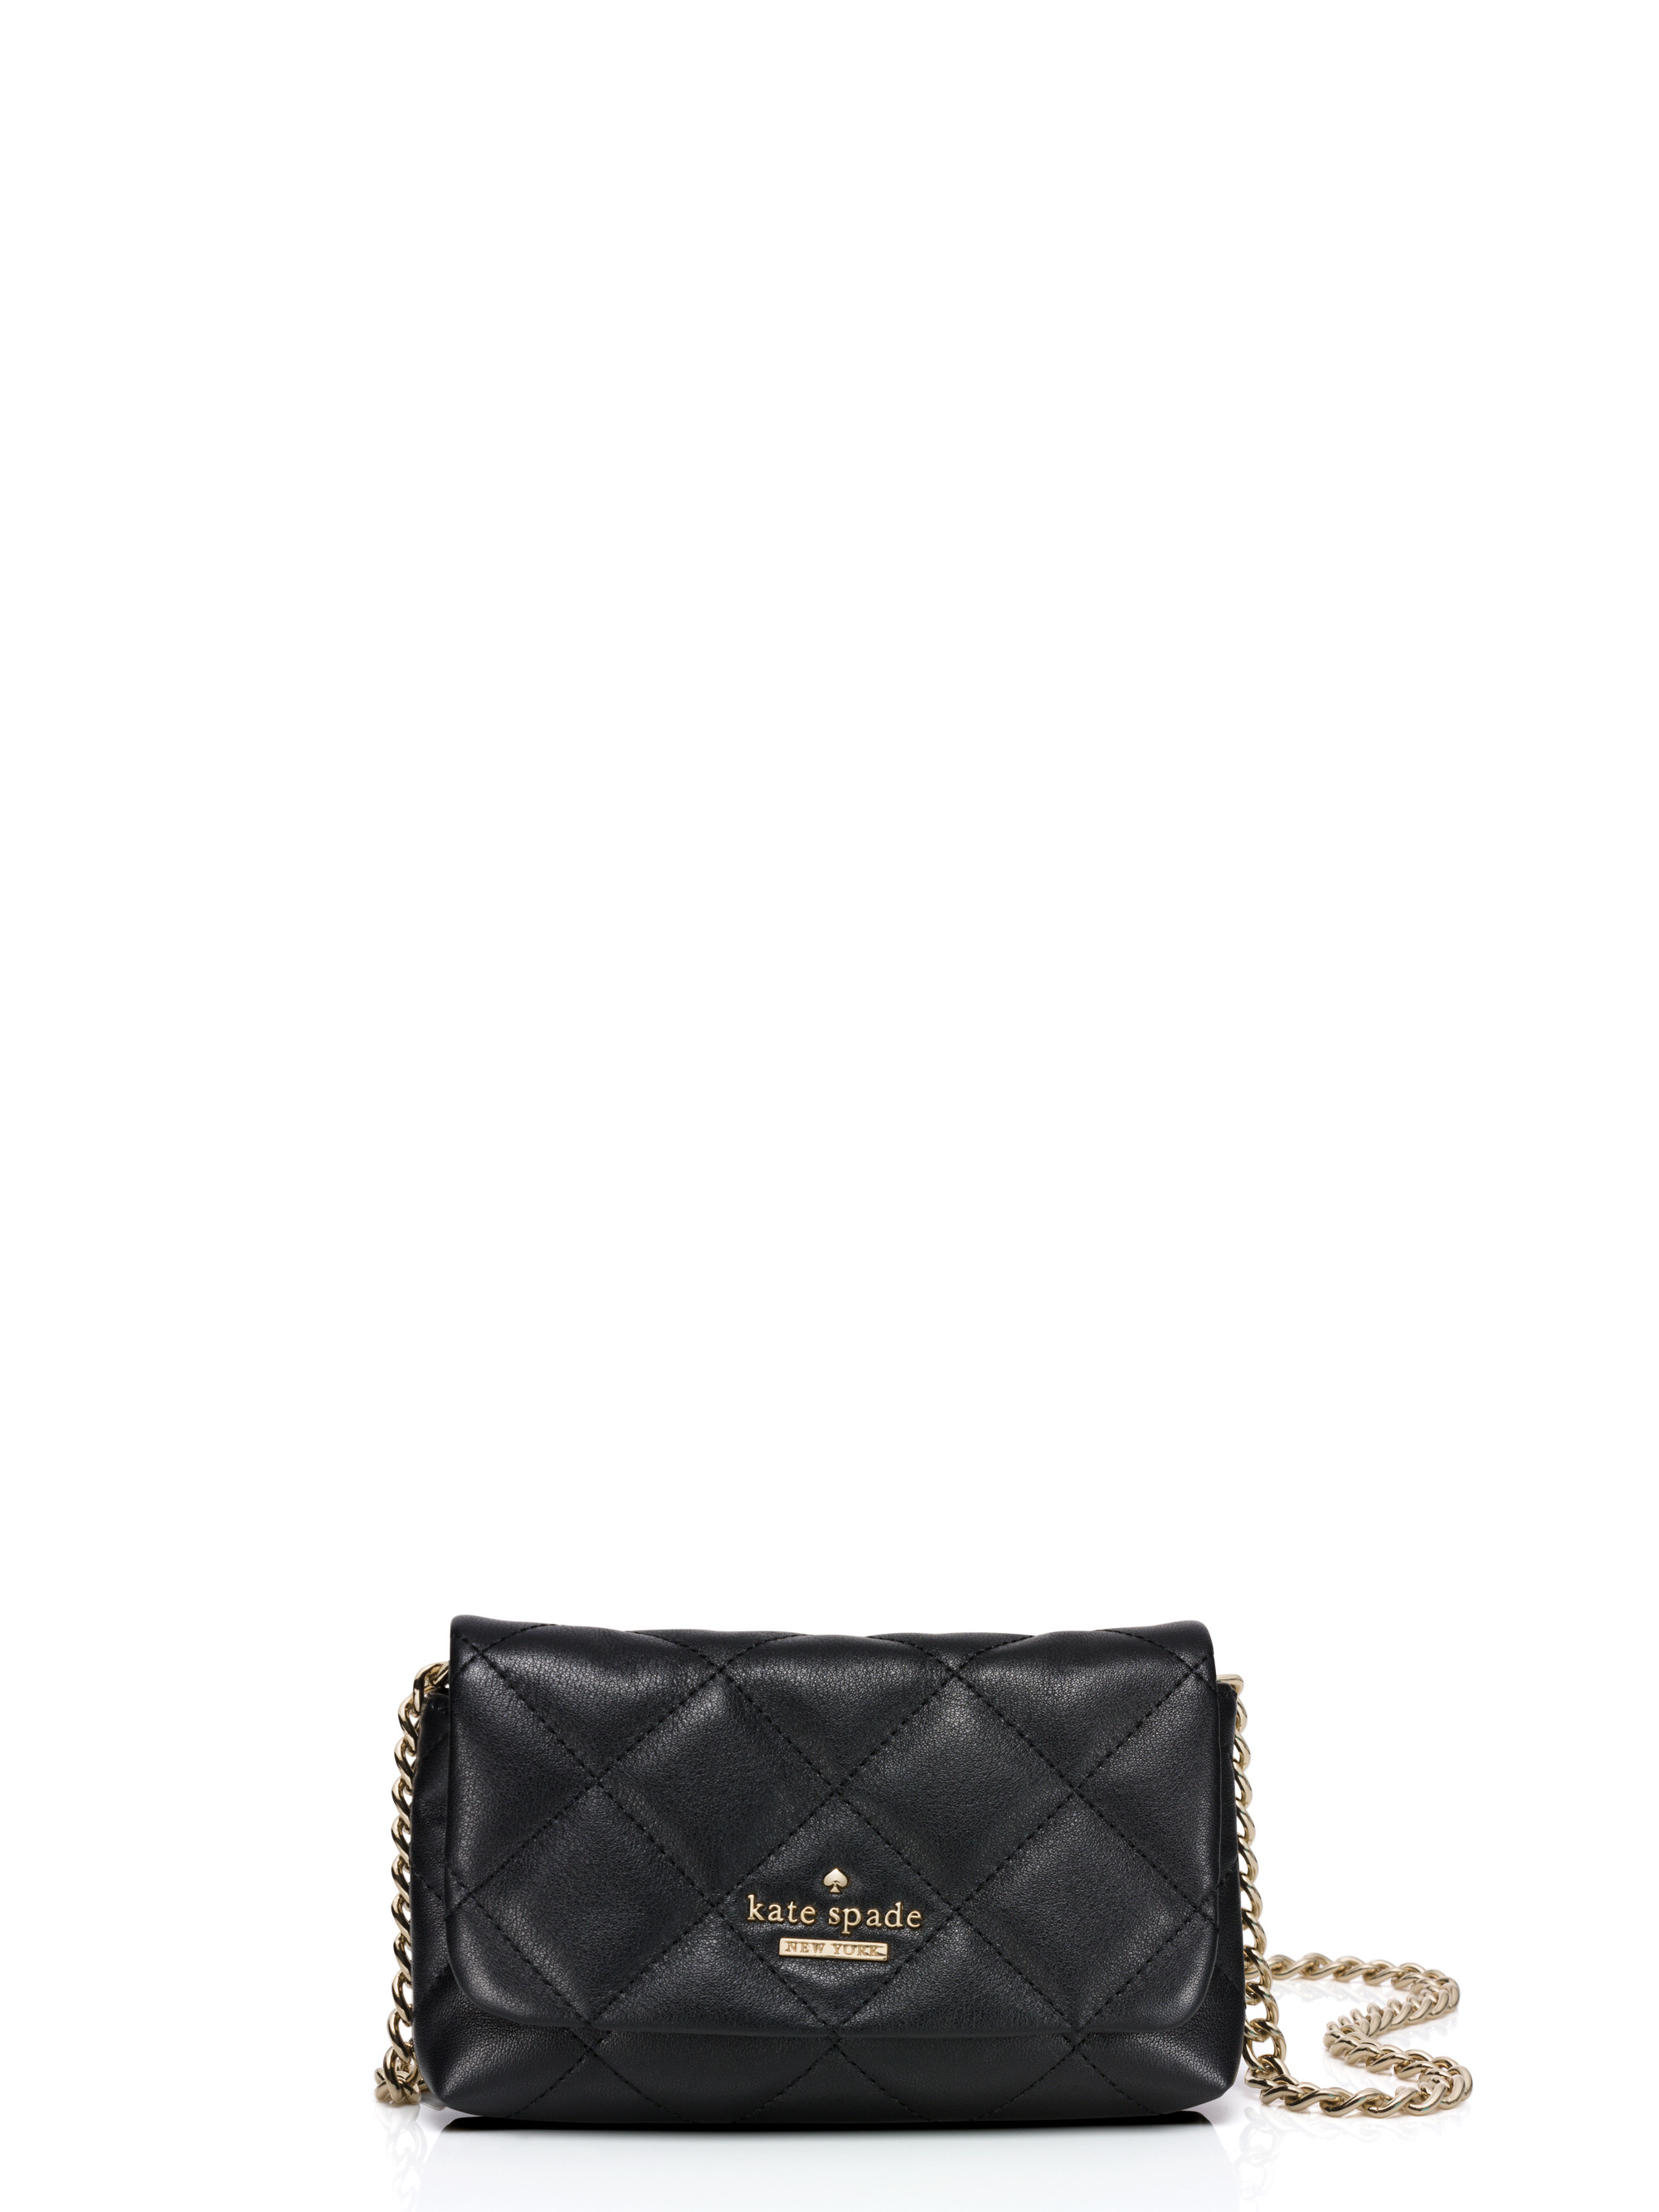 Kate Spade Emerson Place Emi In Black Lyst